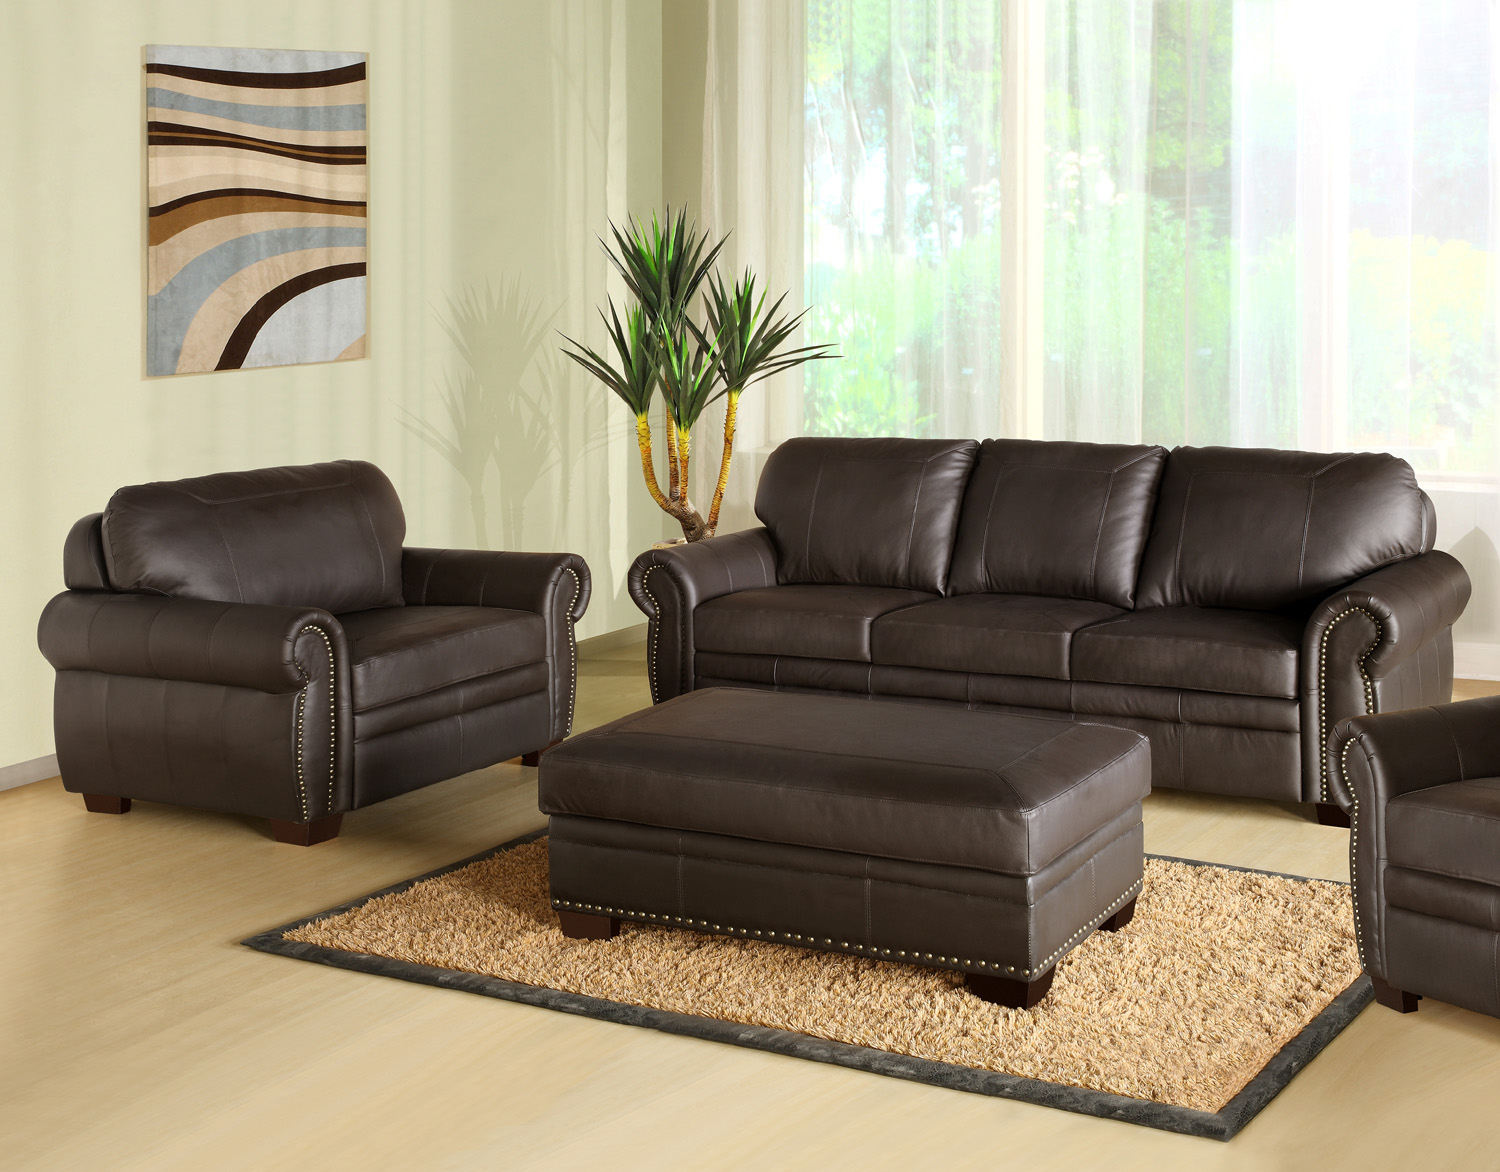 Oversized Chair And Ottoman Set 3 Pc Bellavista Premium Italian Leather Oversized Sofa Chair And